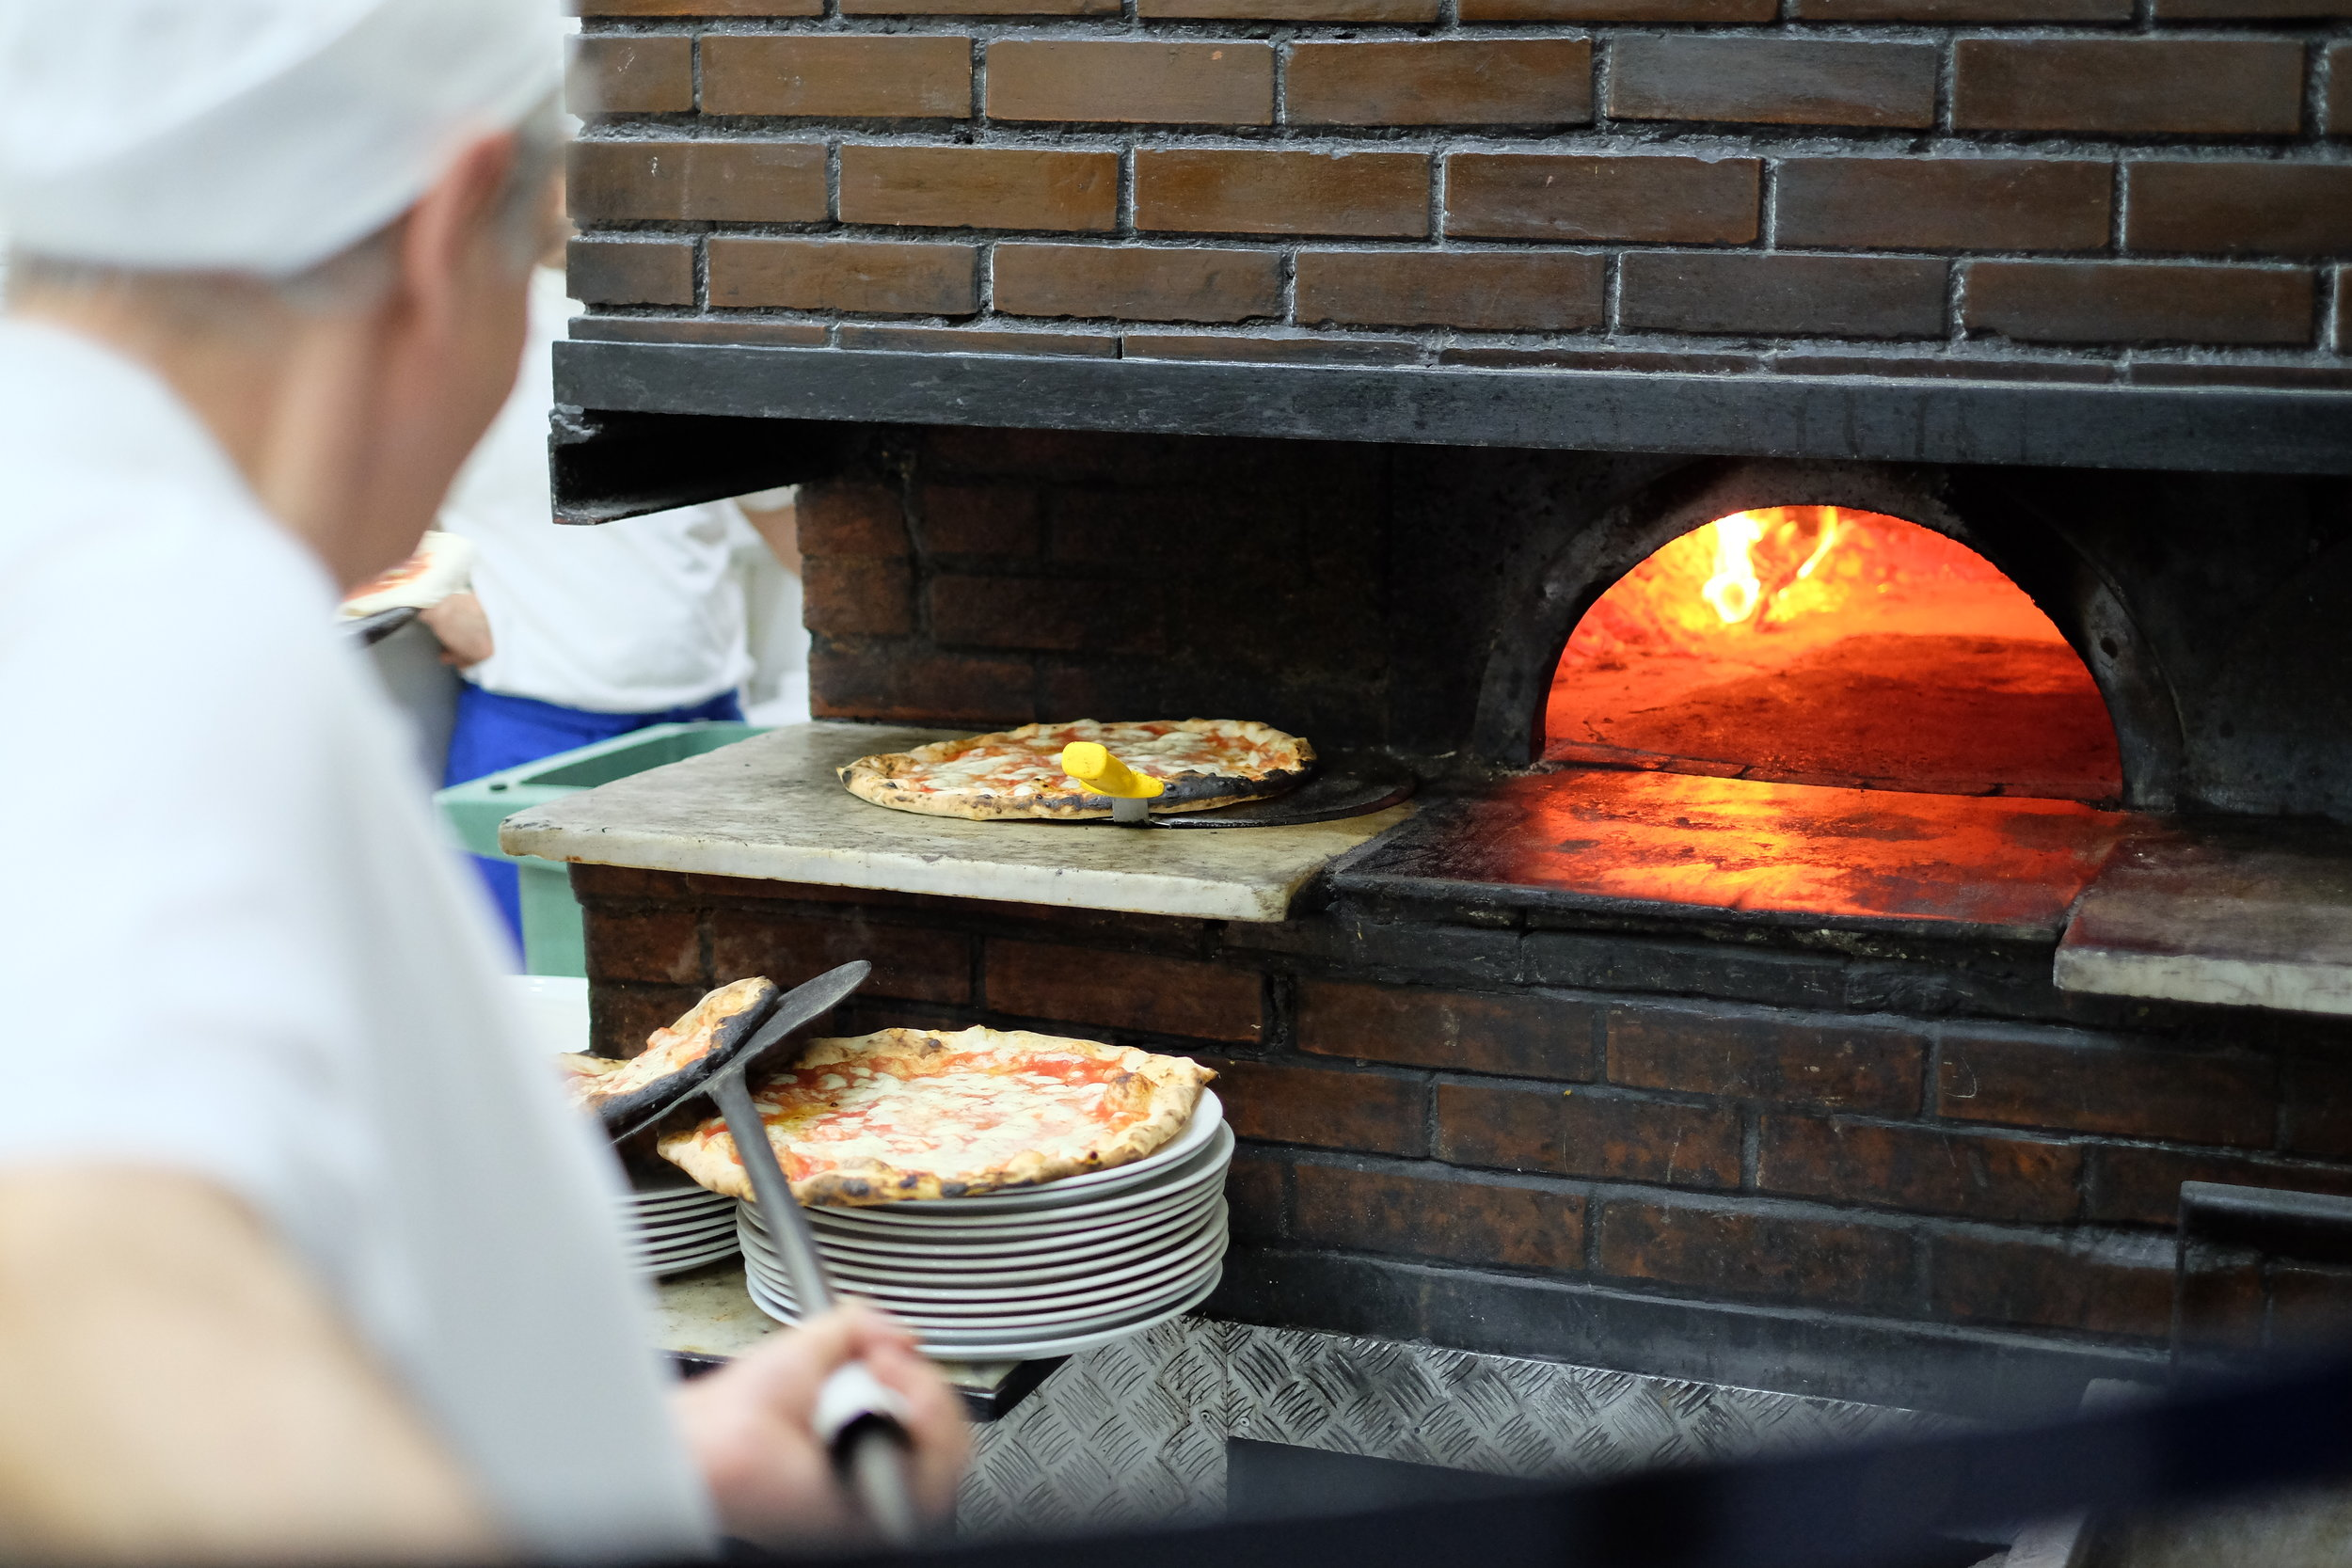 The pizza oven in Napoli.